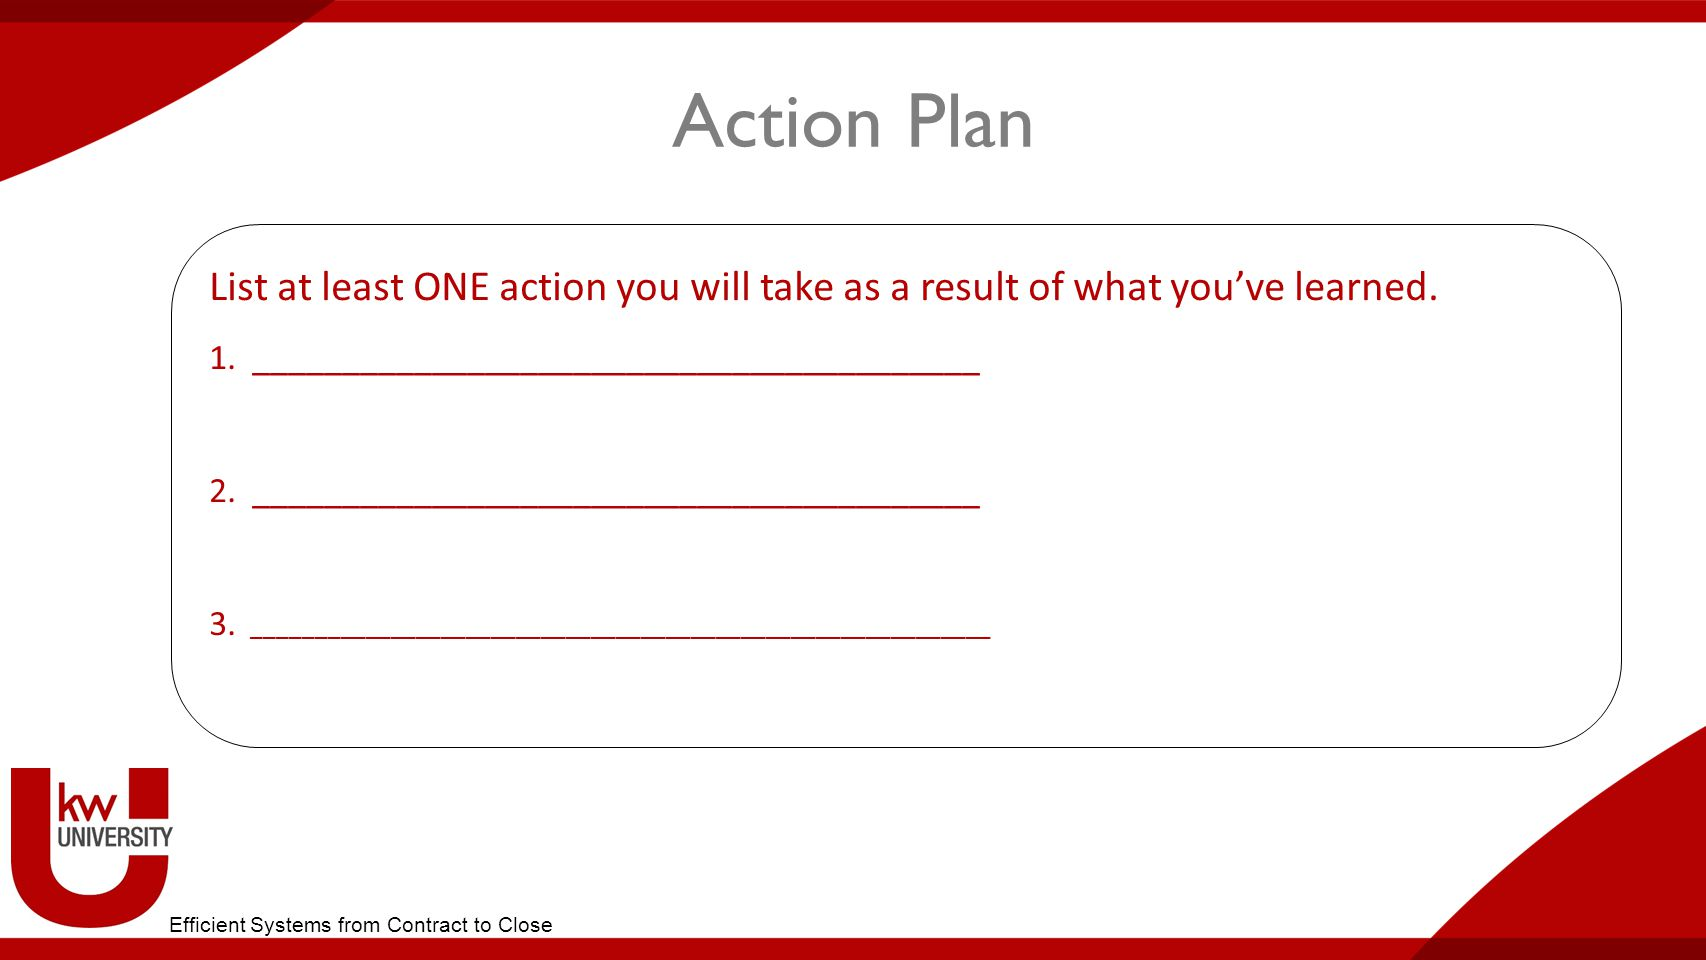 Action Plan List at least ONE action you will take as a result of what you've learned.